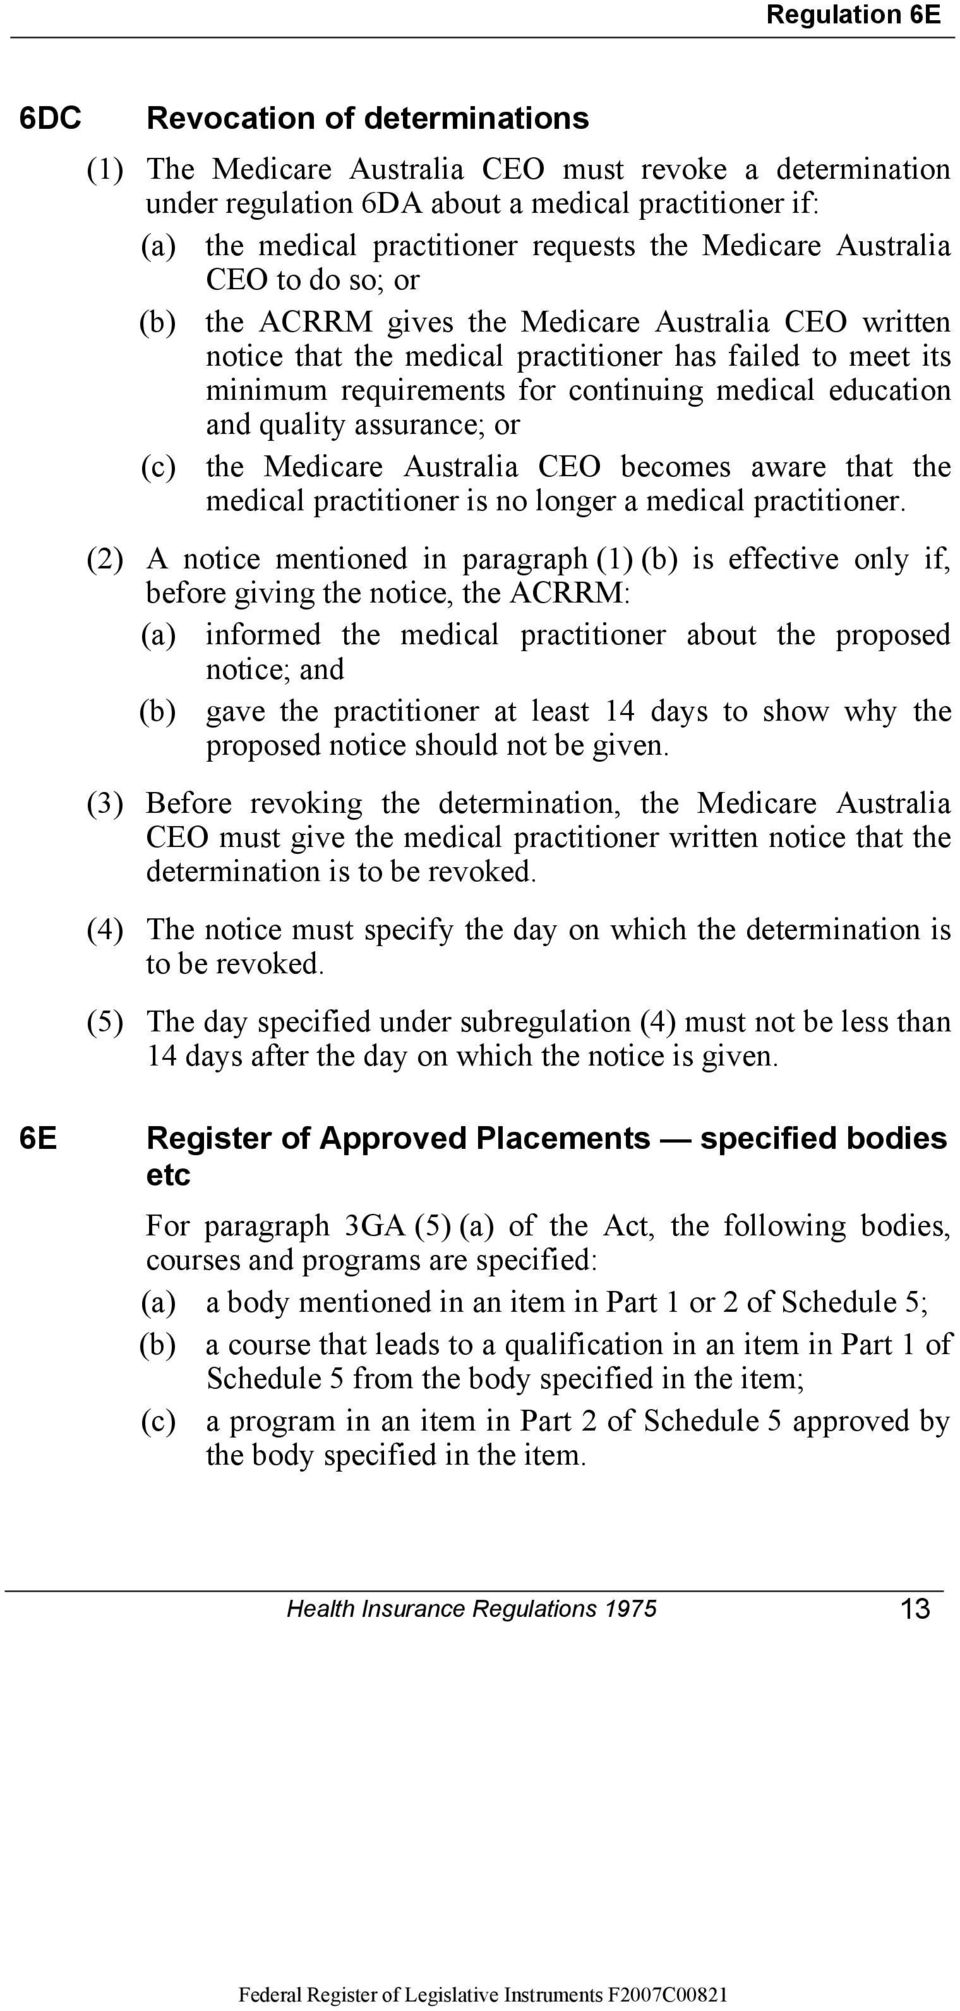 education and quality assurance; or (c) the Medicare Australia CEO becomes aware that the medical practitioner is no longer a medical practitioner.